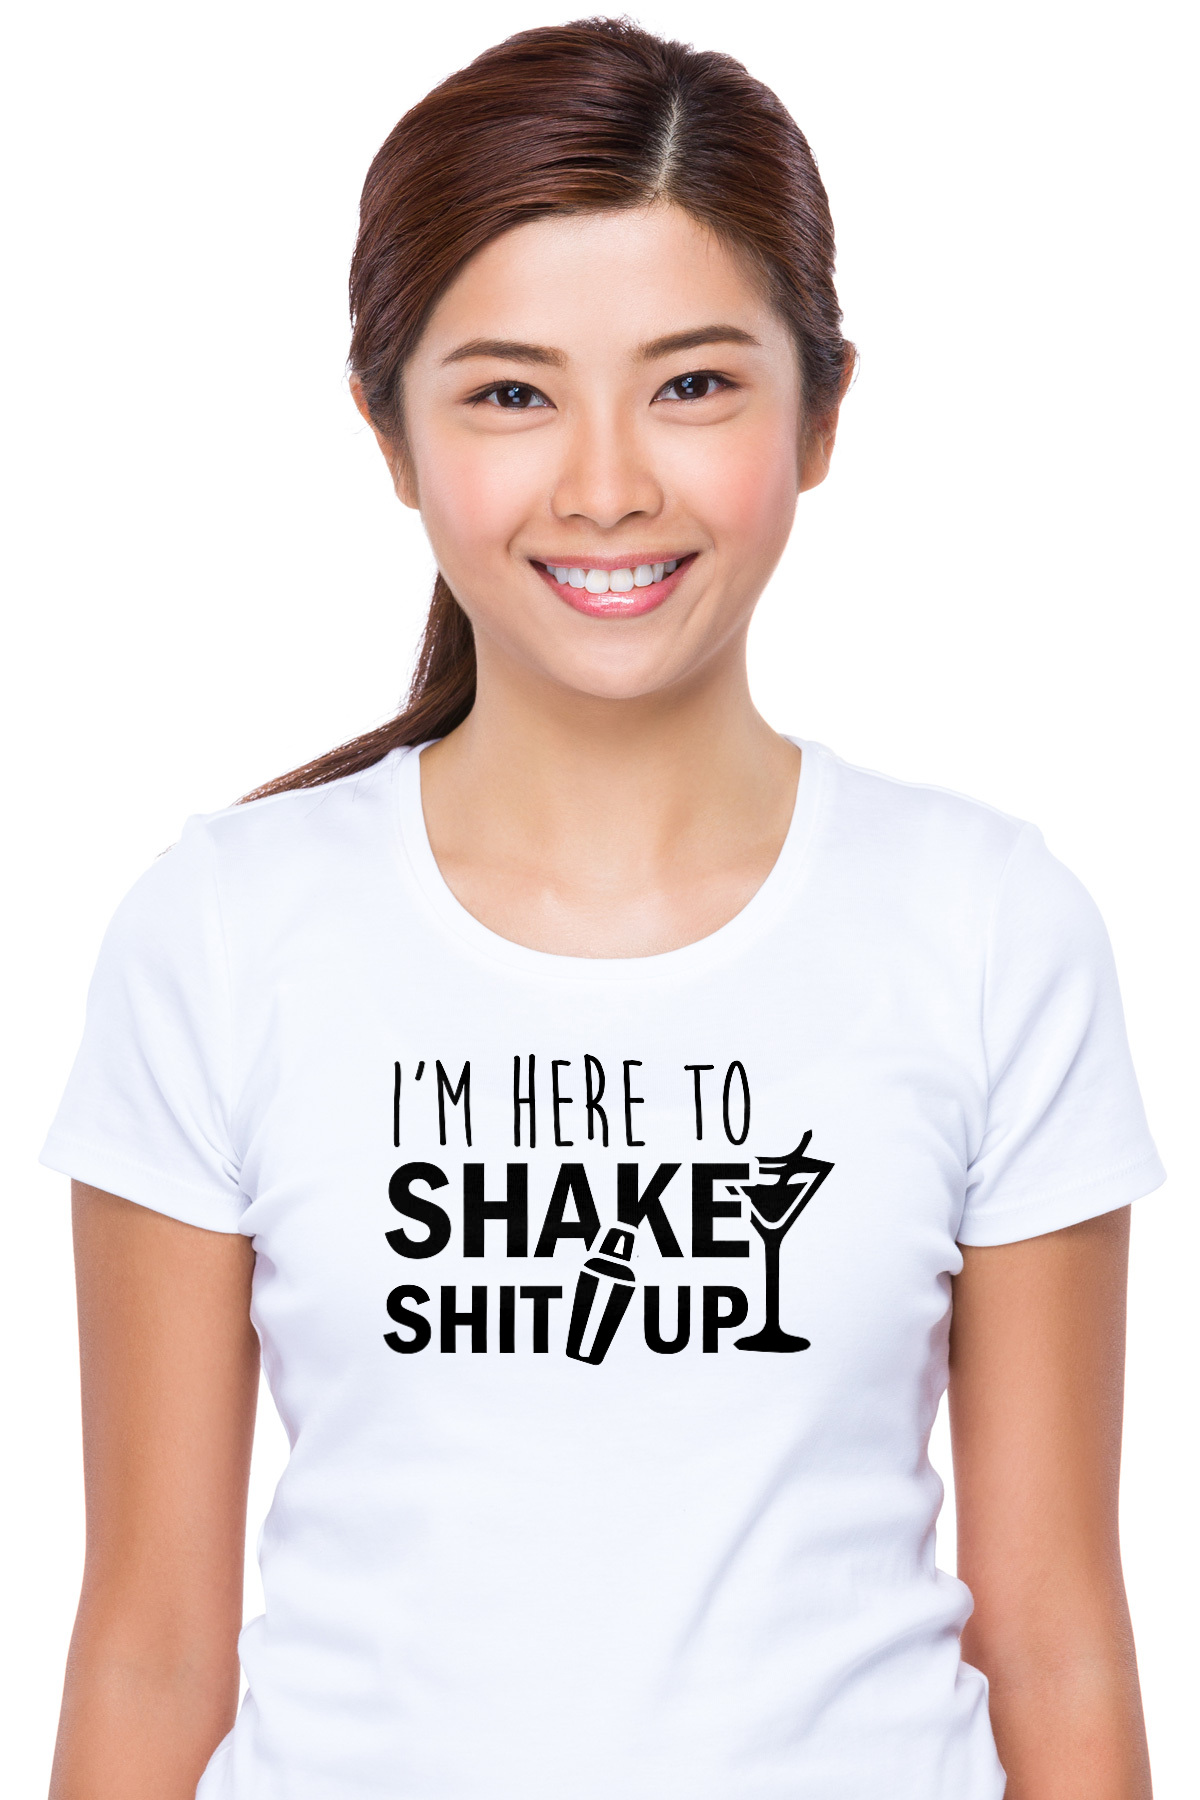 24f2168f2 I'm here to shake shit up - Funny Bartending / Bartender T-Shirt